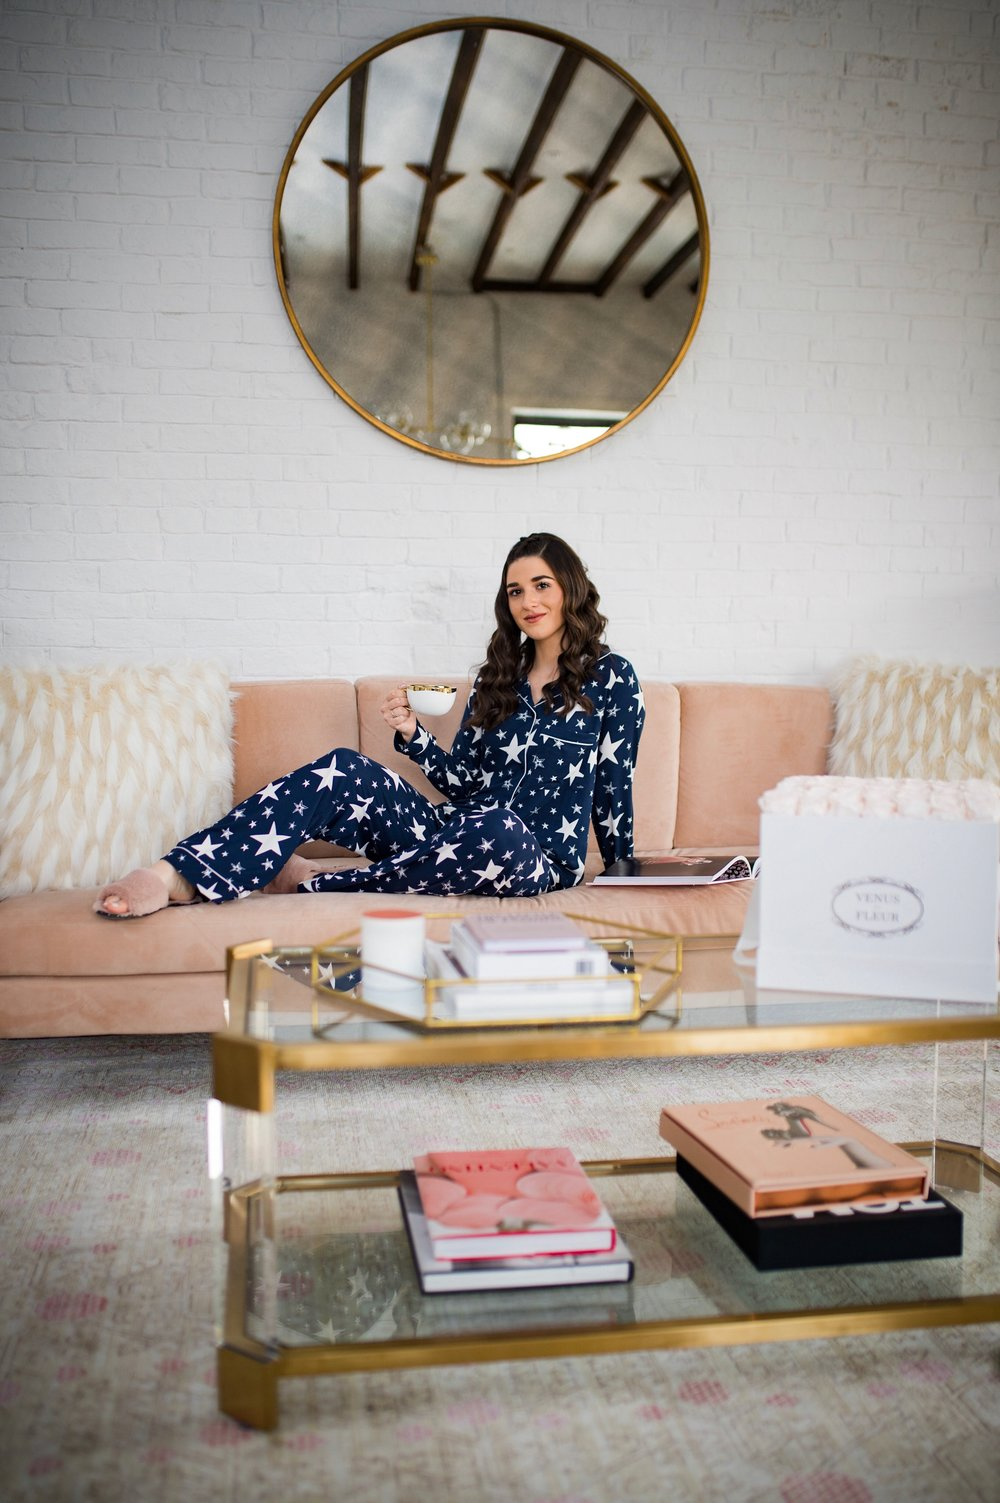 5 Tips For Becoming A Morning Person Navy Star Pajamas Esther Santer Fashion Blog NYC Street Style Blogger Outfit OOTD Trendy Shopping PJs Holiday ASOS Cute Wear Interior Beautiful Home Penthouse Wayfair Circle Mirror Venus Et Fleur Gold Coffee  Table.jpg